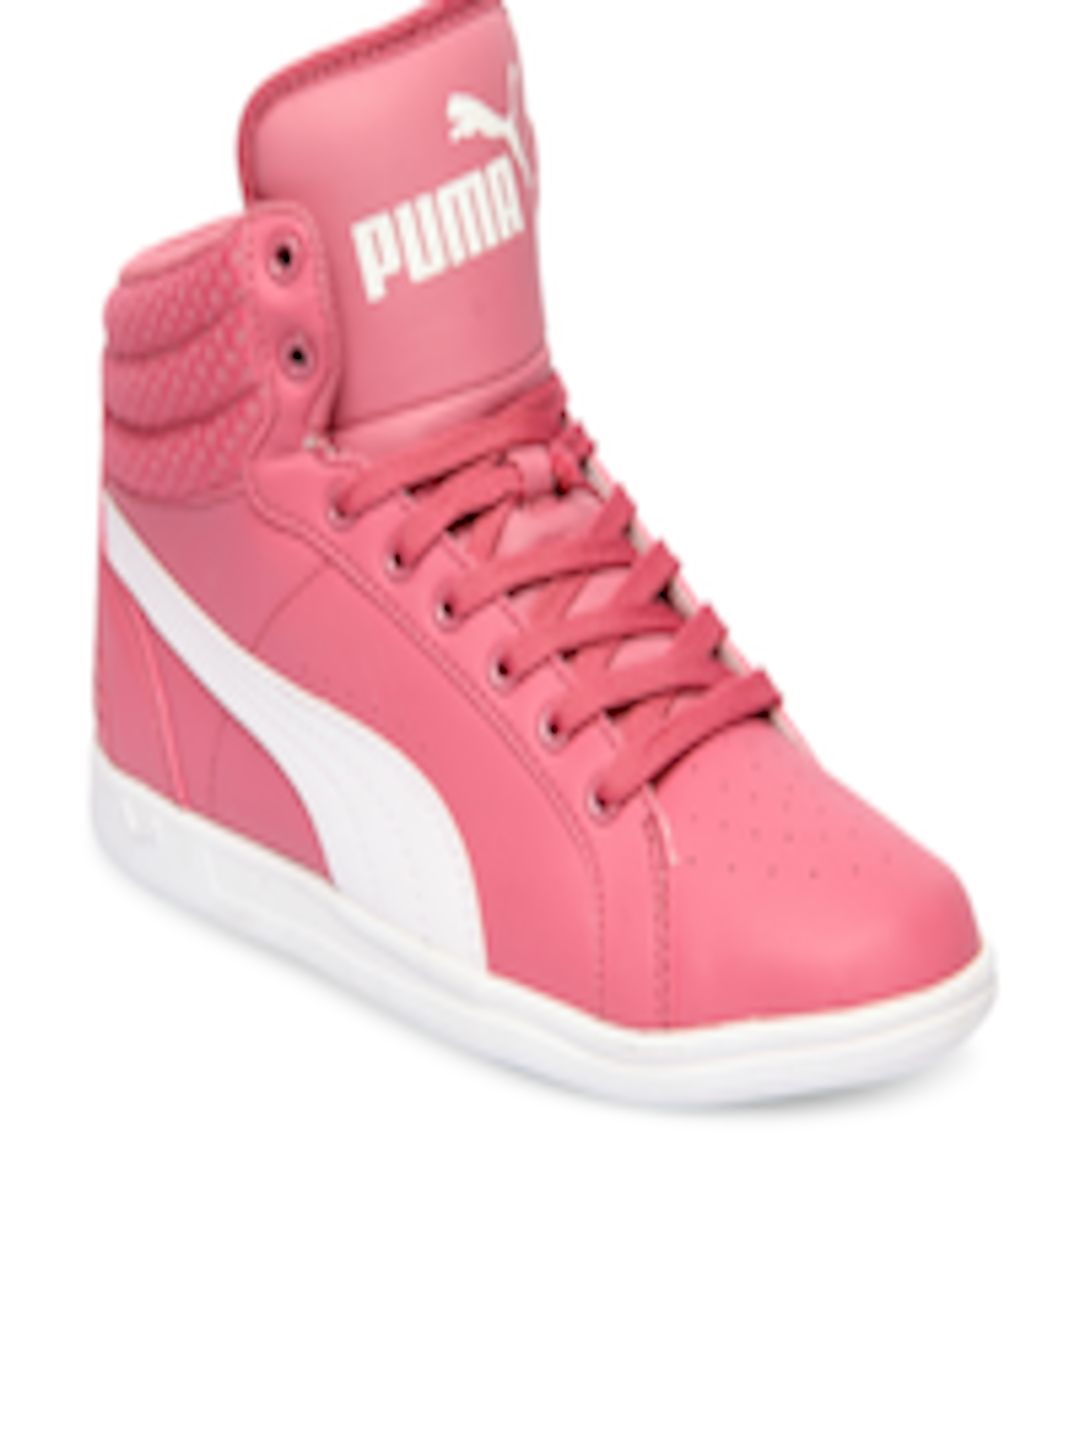 Buy Puma Girls Pink Ikaz Mid V2 Jr Mid Top Sneakers - Casual Shoes for Girls  2107958  b5d81cab9